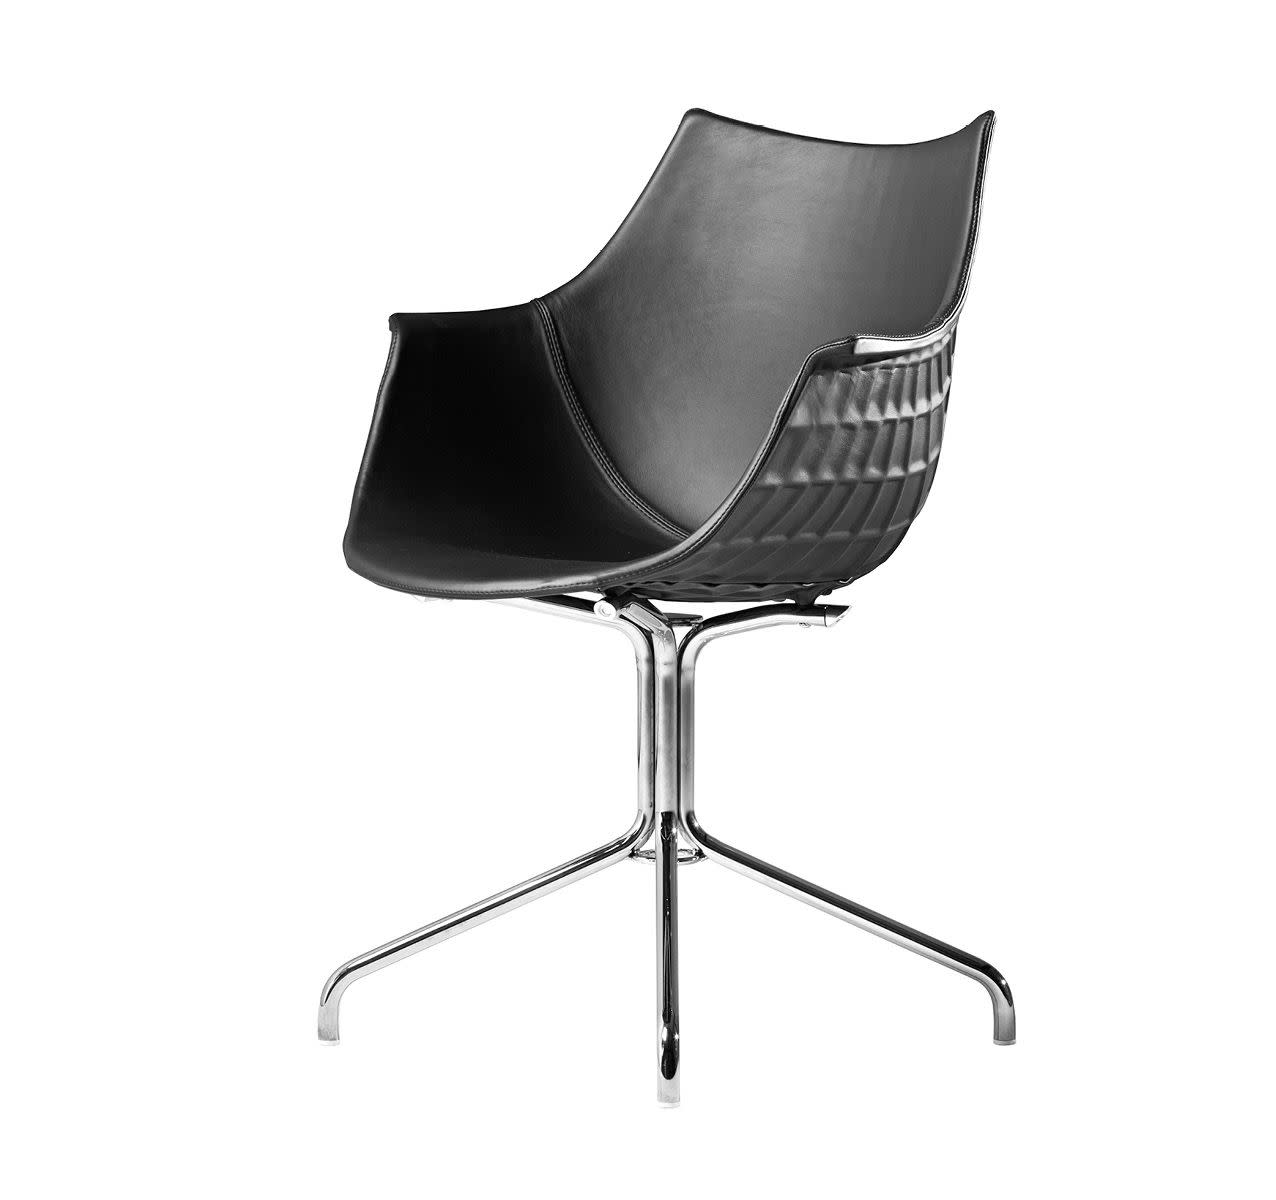 Meridiana Chair with Swivel Base Upholstered Chrome, Tigri - Arancione 5360